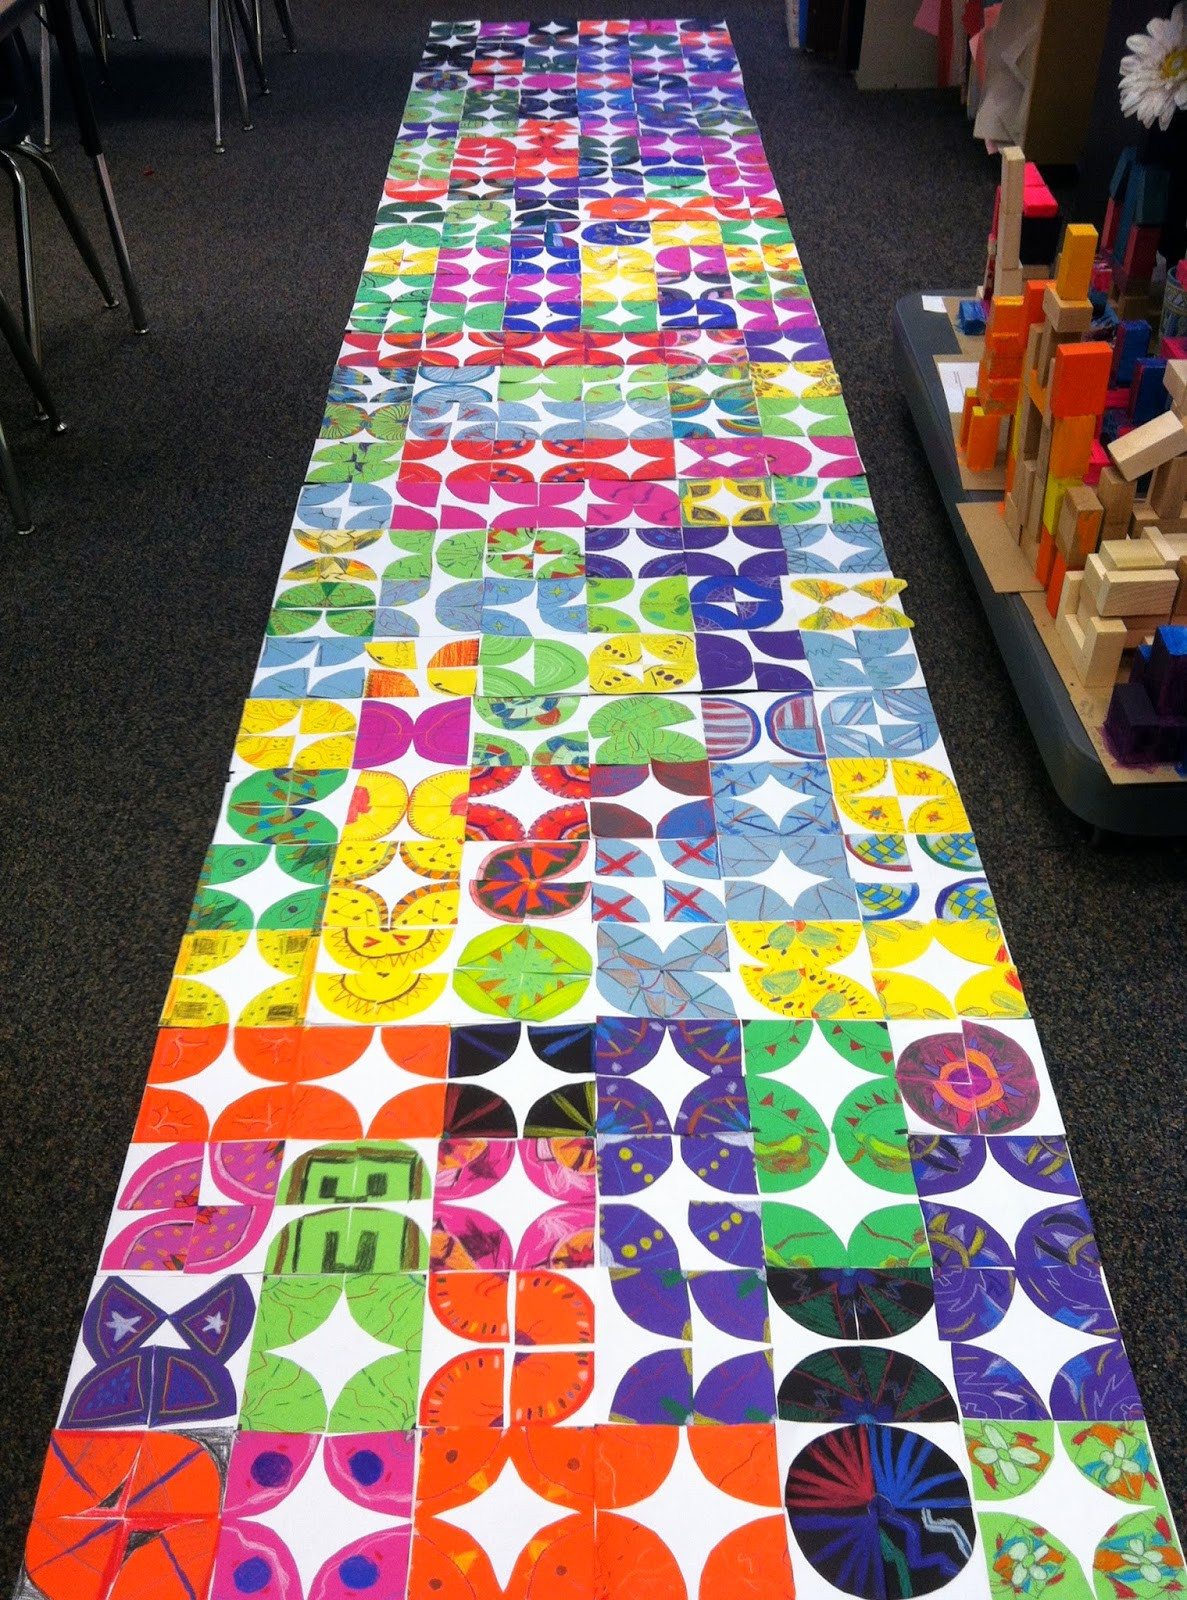 Best ideas about Art Projects For Little Kids . Save or Pin shine brite zamorano we ll keep on biggering and biggering Now.